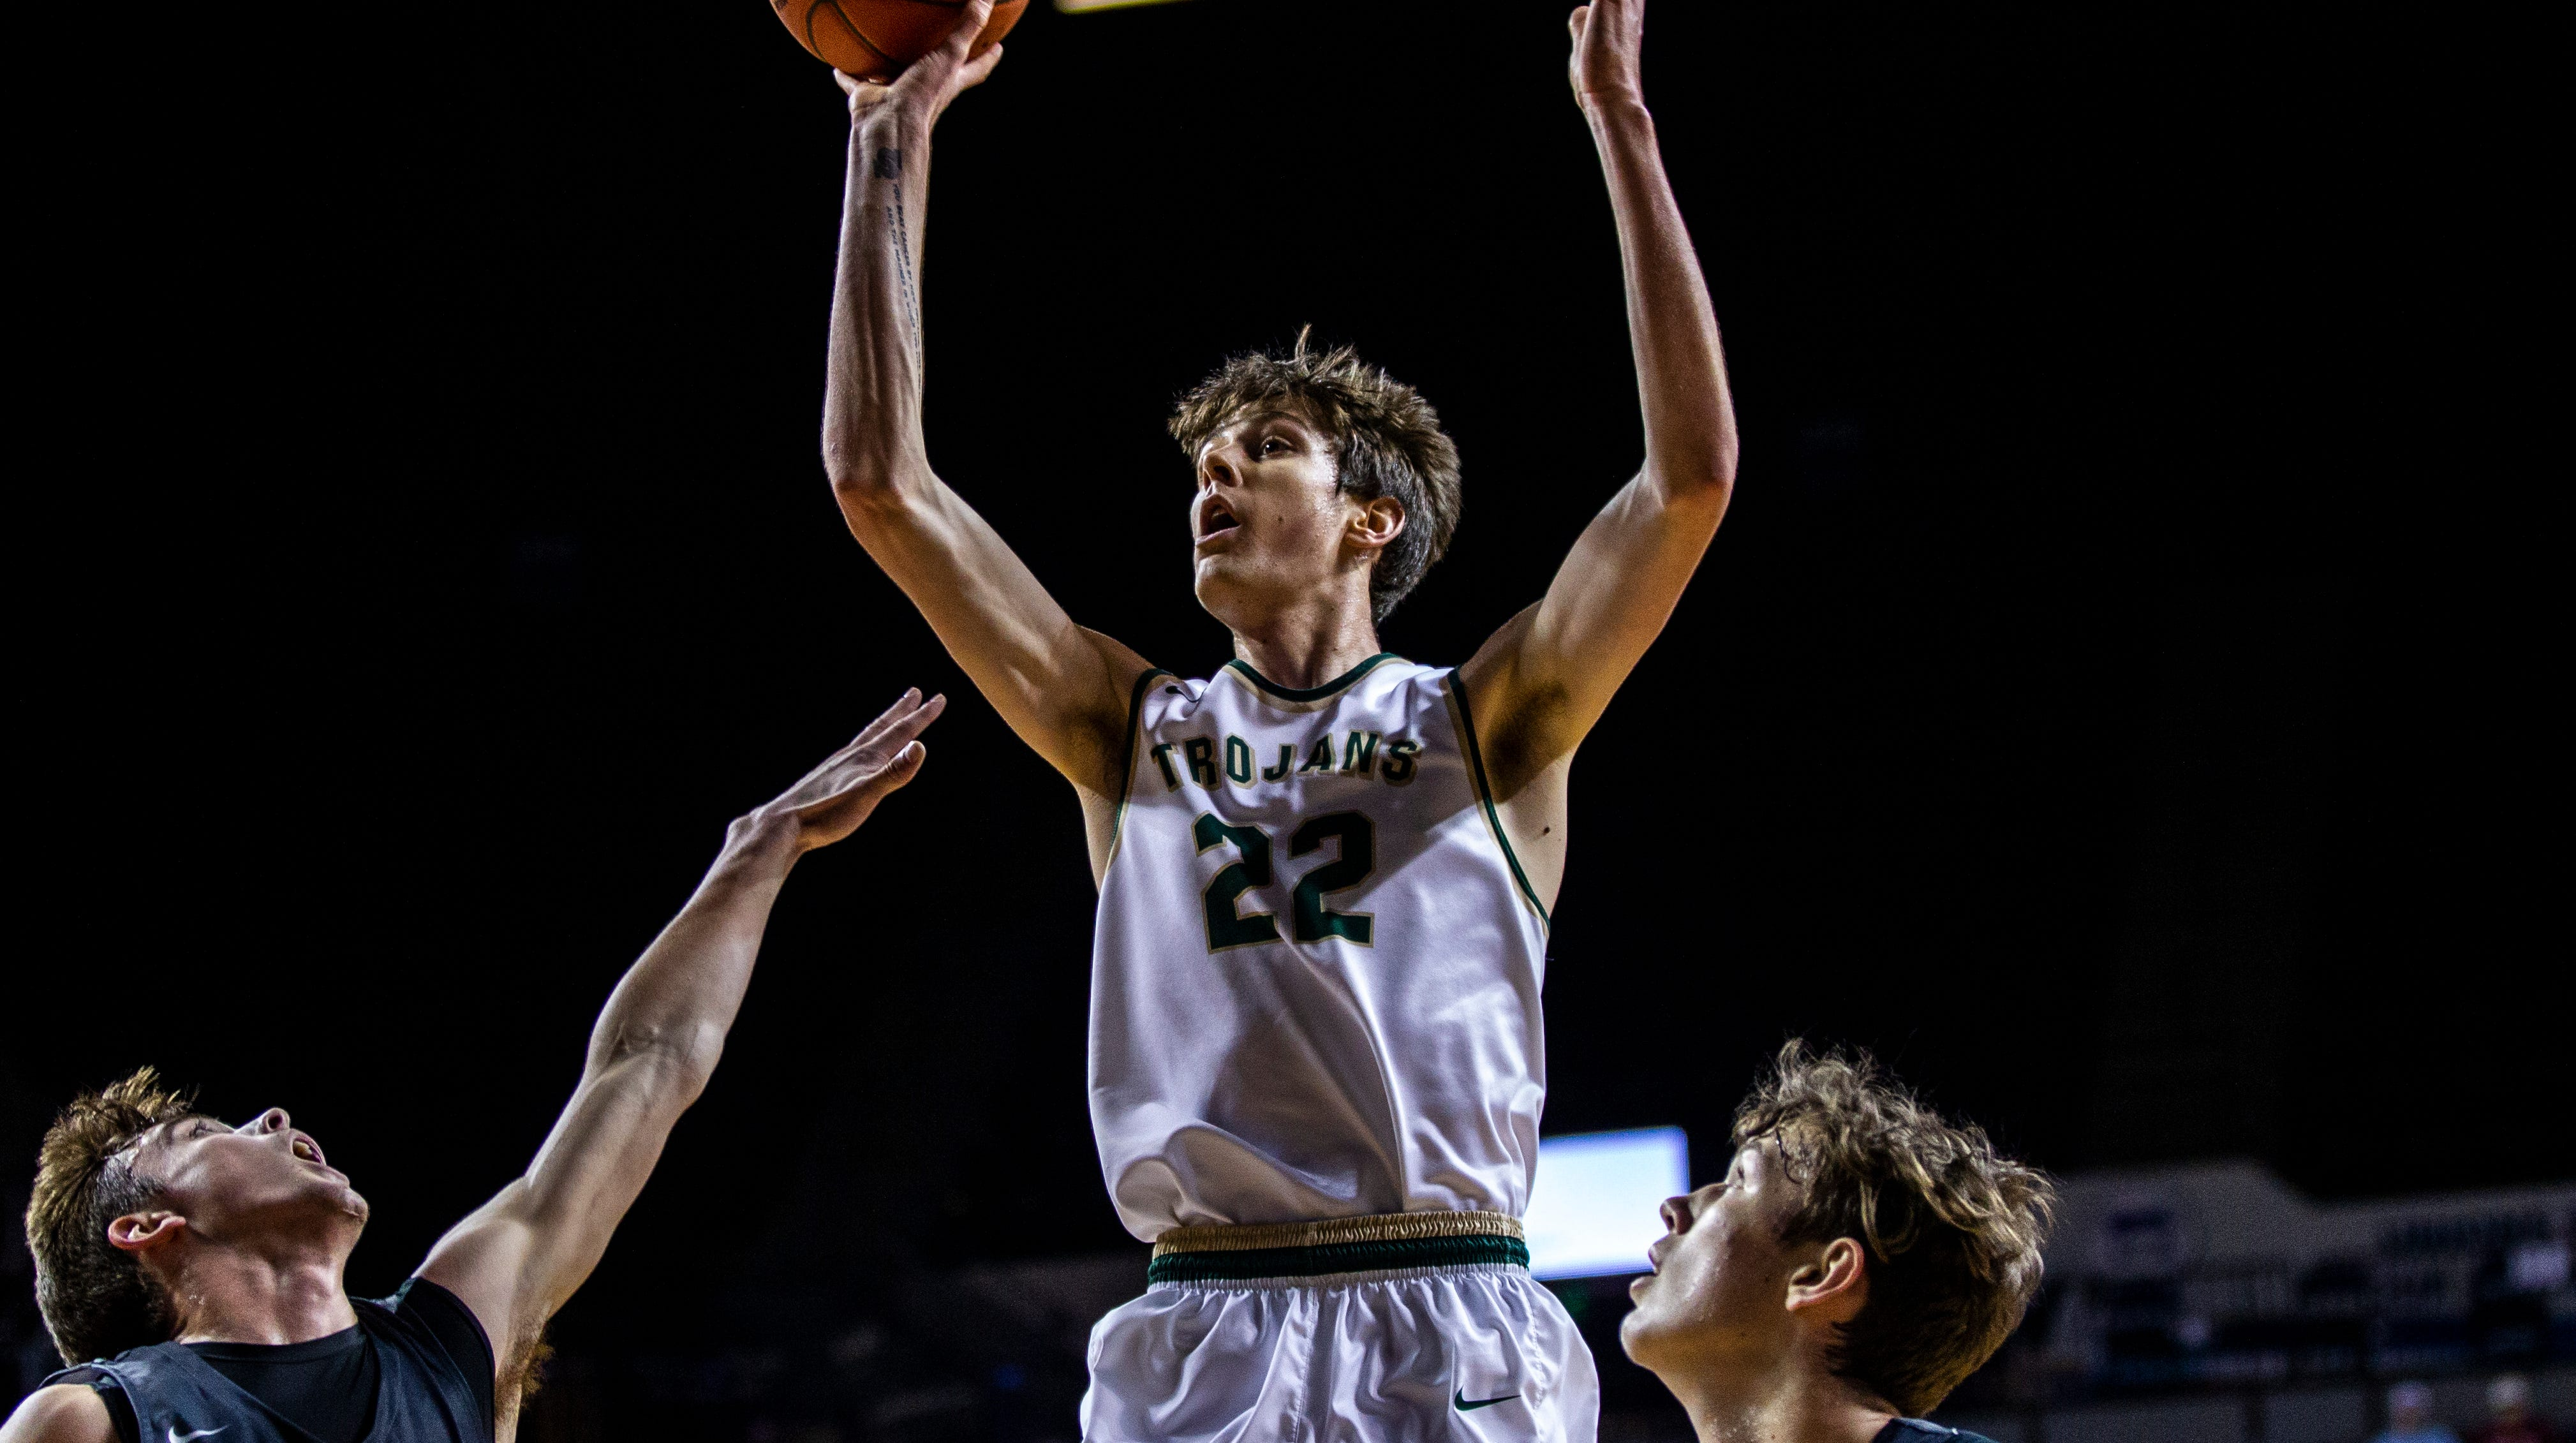 Iowa City West's Patrick McCaffery (22) attempts a basket during a boys' basketball game in the Wells Fargo Advisors Shootout on Saturday, Jan. 19, 2019, at the U.S. Cellular Center in Cedar Rapids, Iowa.